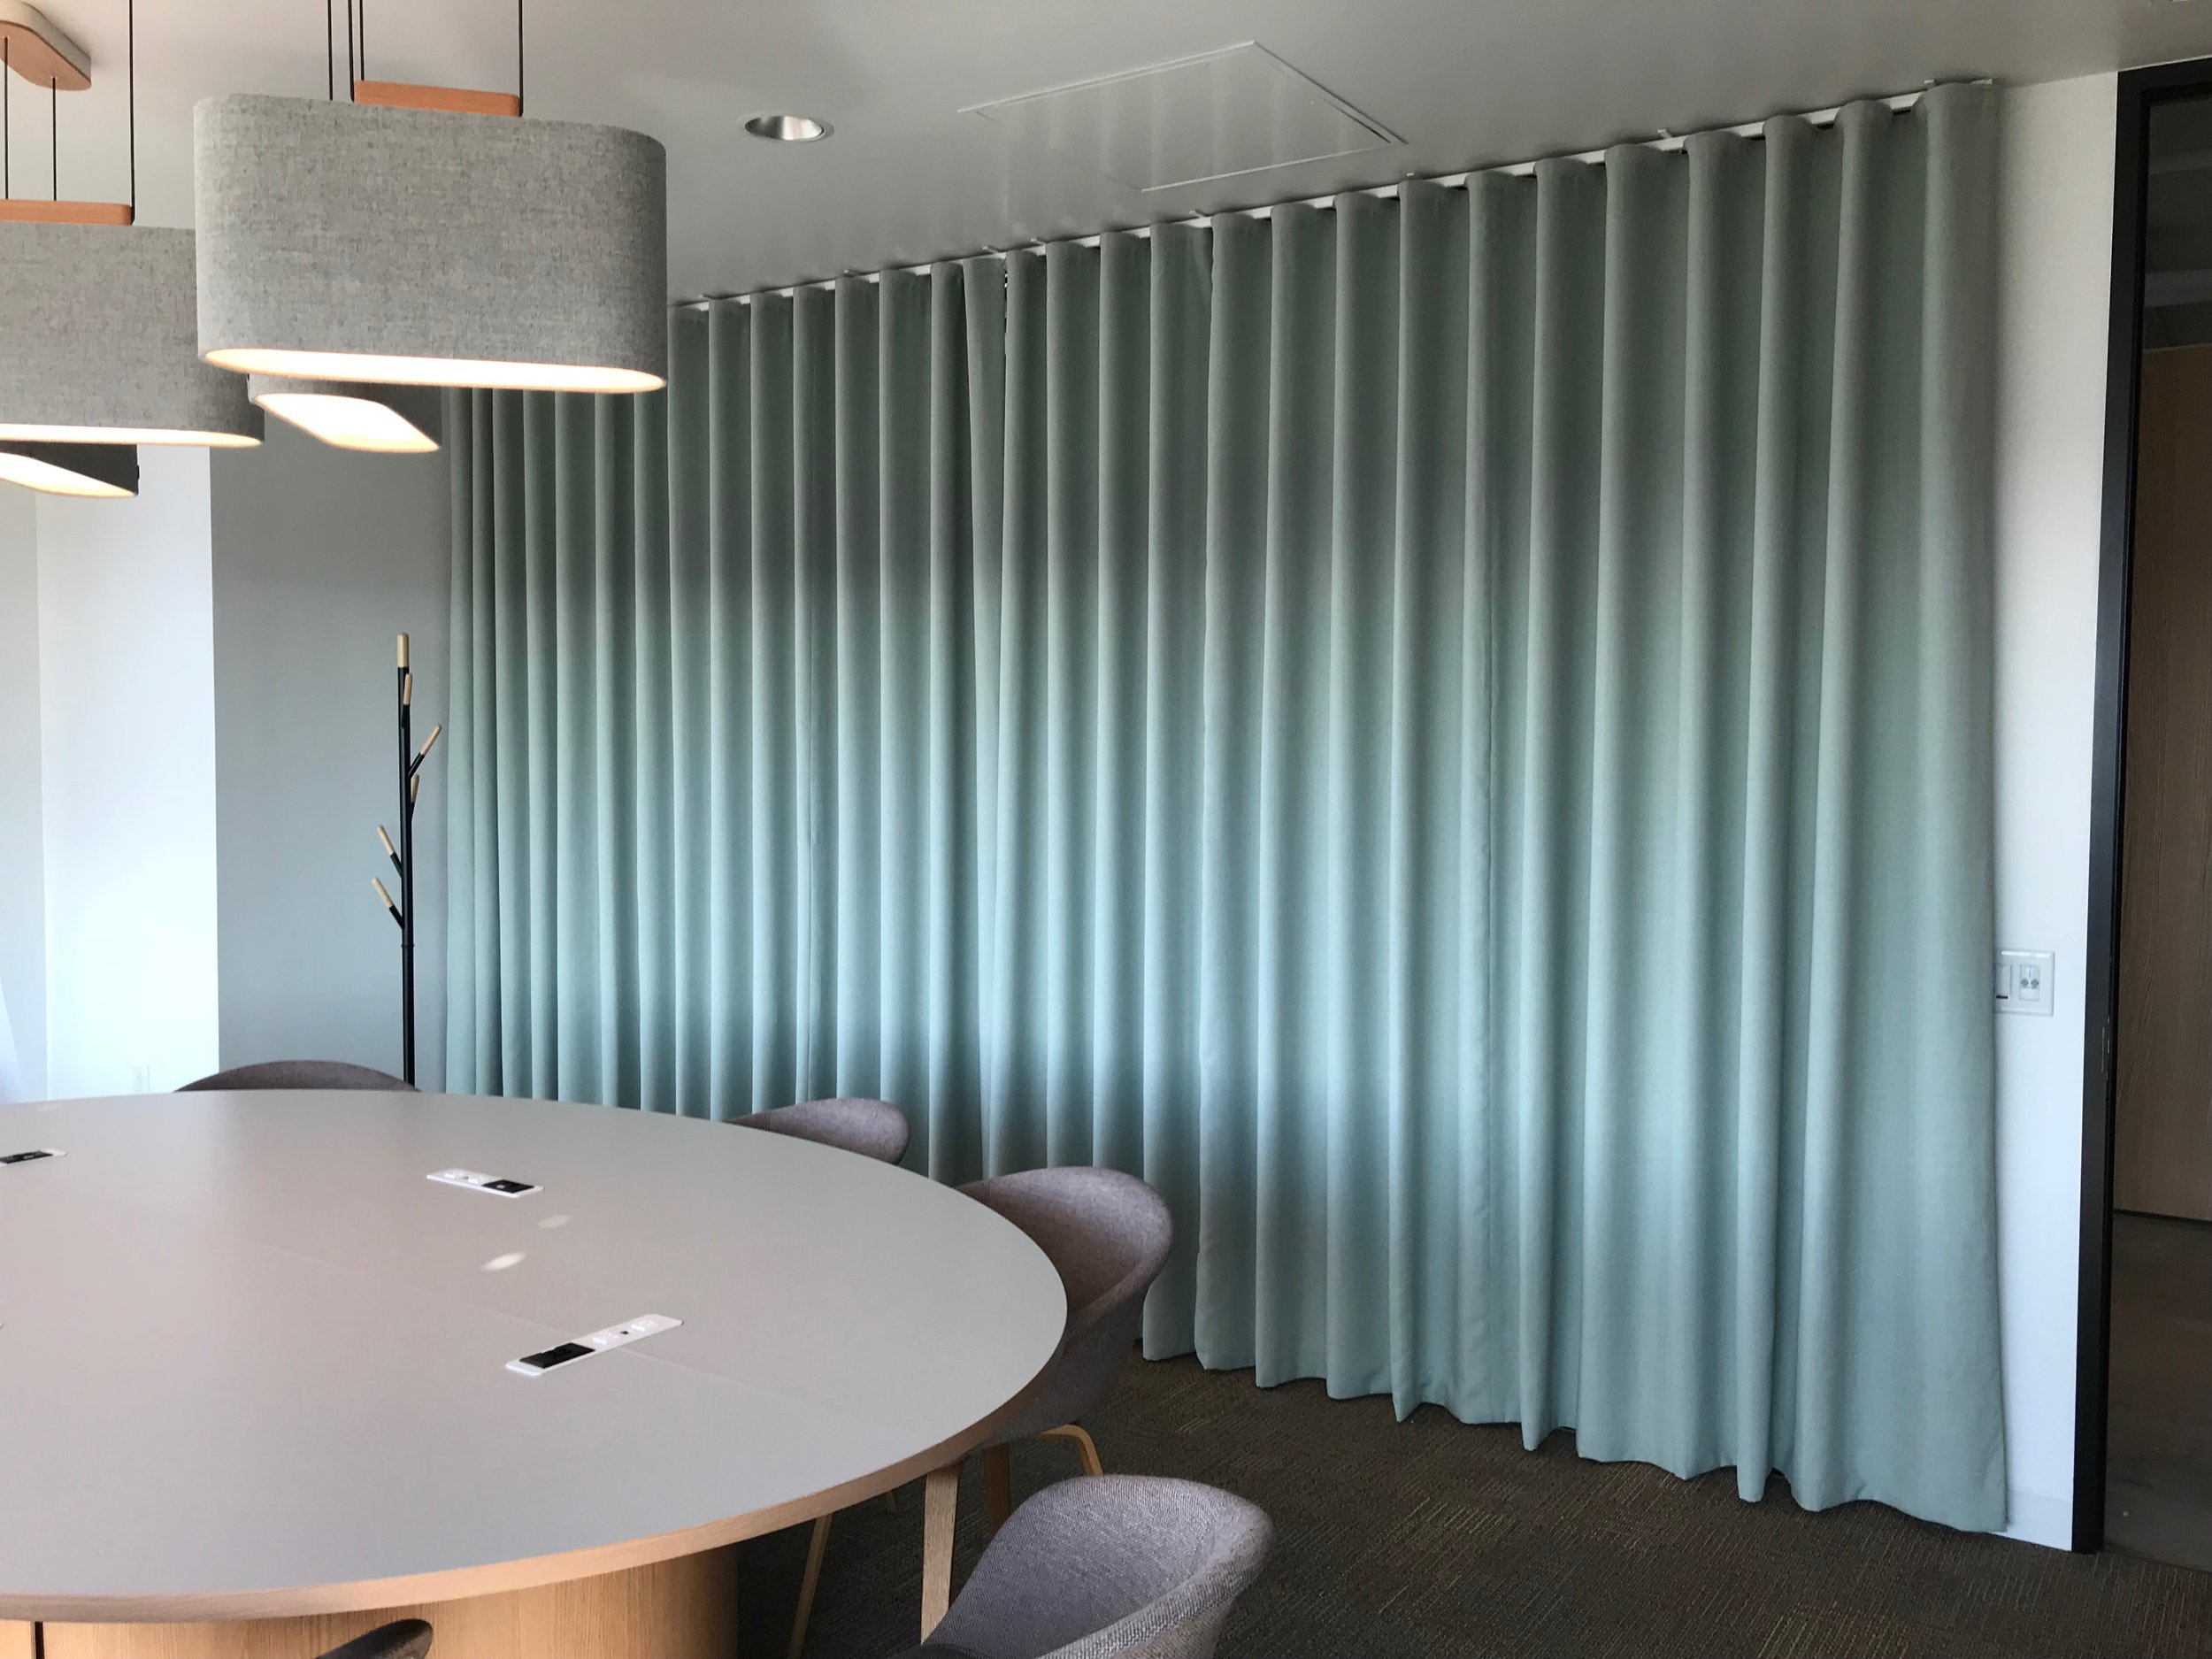 Custom double sided draperies for a commercial space in Northern Virginia, designed and installed by Home by Eva